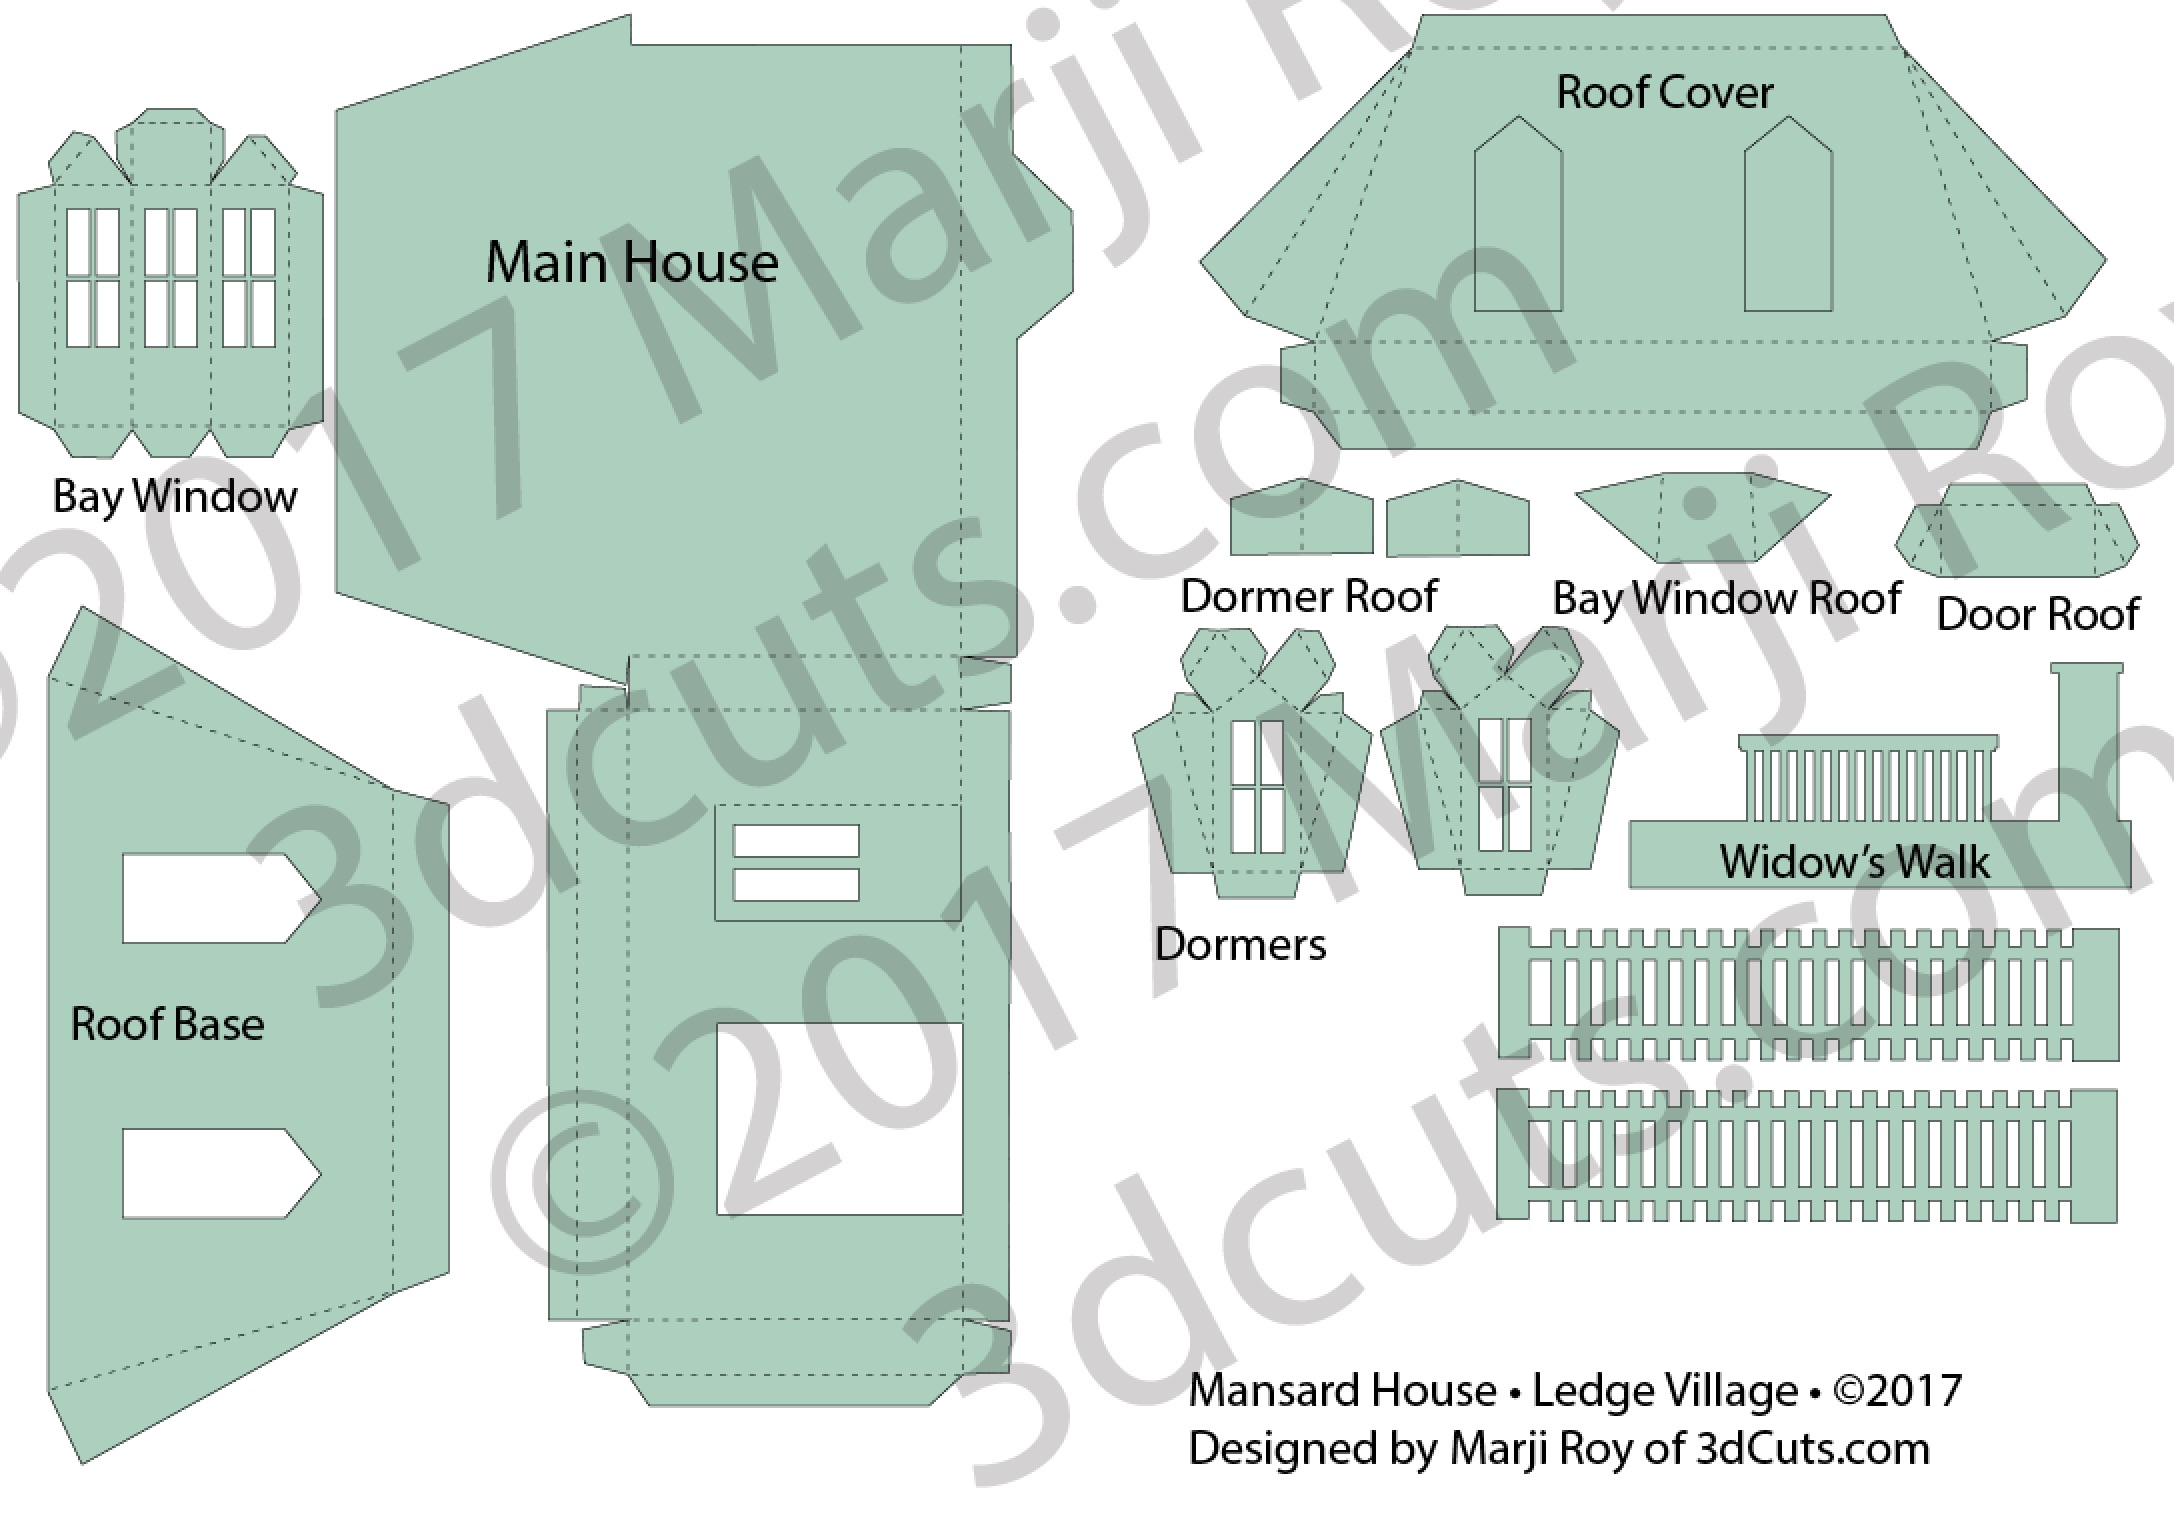 Mansard House cutting files is part of Ledge Village. These are cutting files in SVG, pdf, png, and dxf formats. Designed by Marji Roy of 3dcuts.com for Silhouette, Cricut and other cutting machines ©2017by Marji Roy